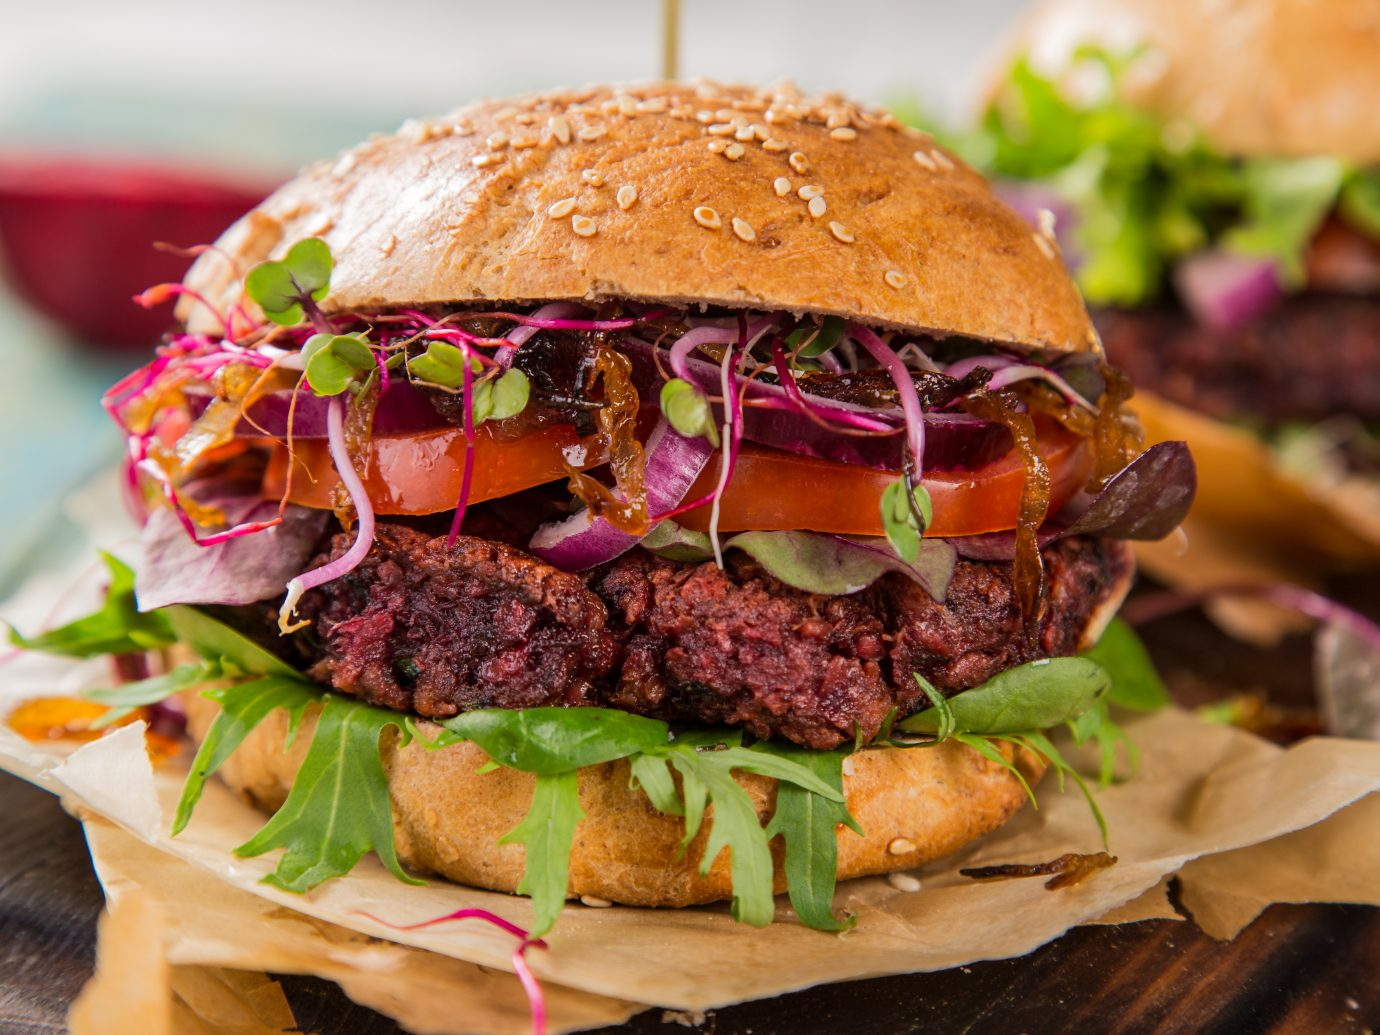 Close-up of home made vegetarian red beet burgers on wooden table at The Slutty Vegan, Atlanta, GA